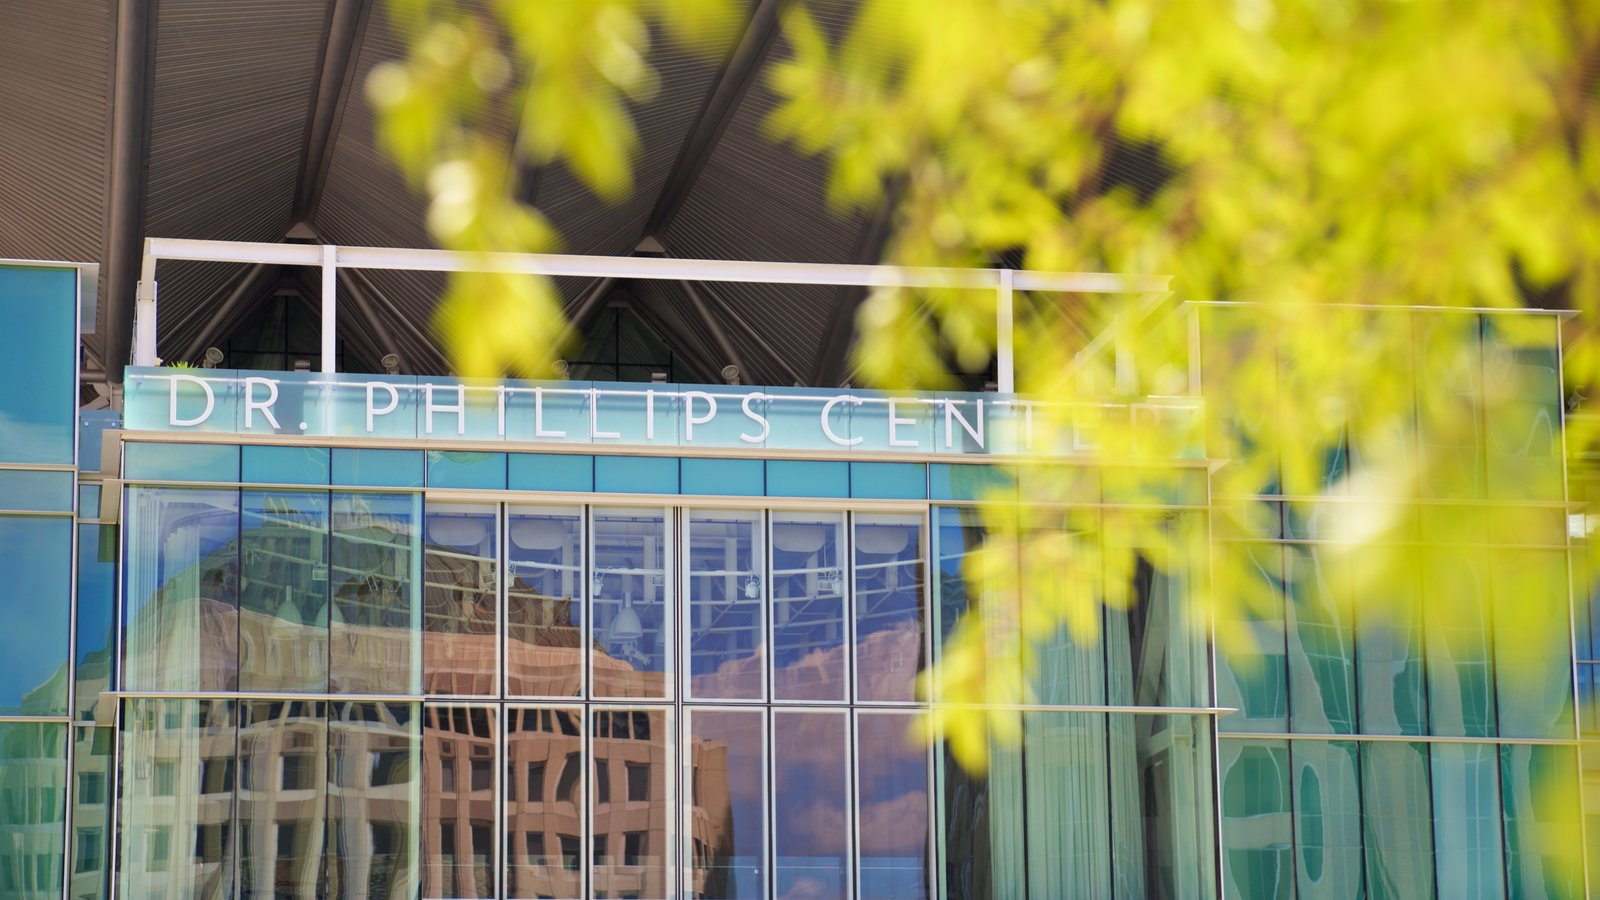 Dr. Phillips Center for the Performing Arts which includes modern architecture and signage